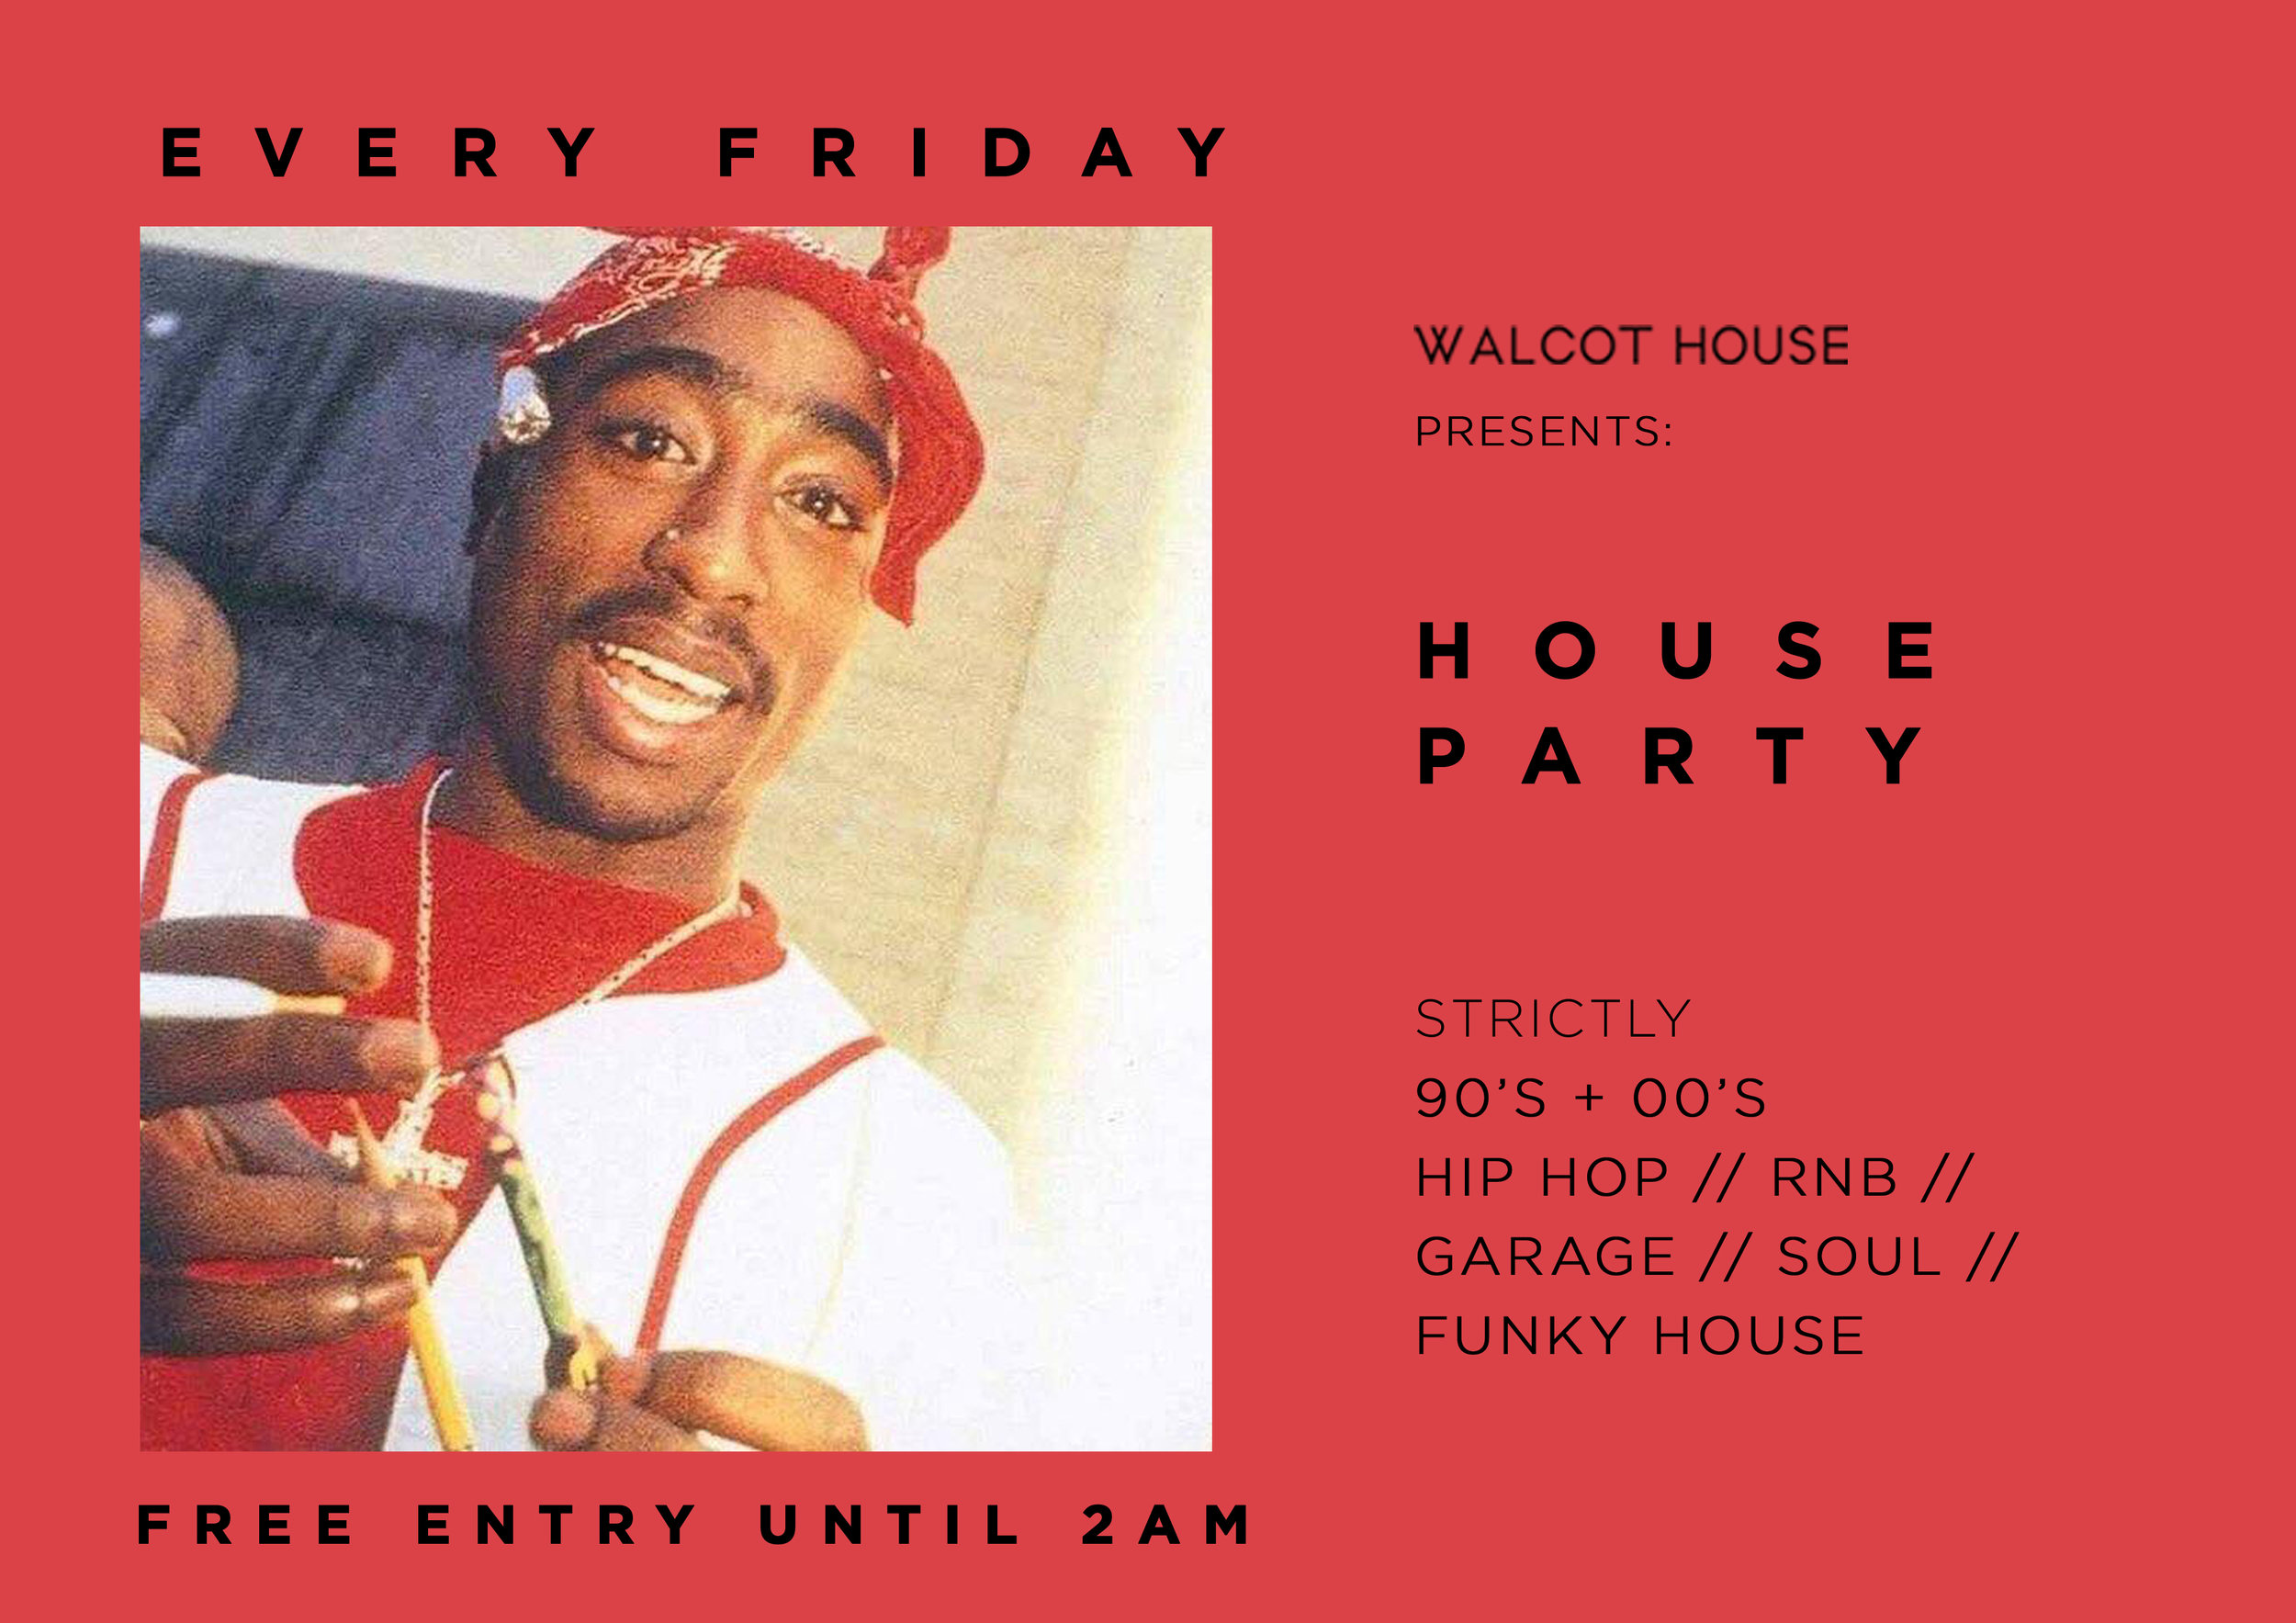 HOUSE PARTY FLYER 2pac.jpg